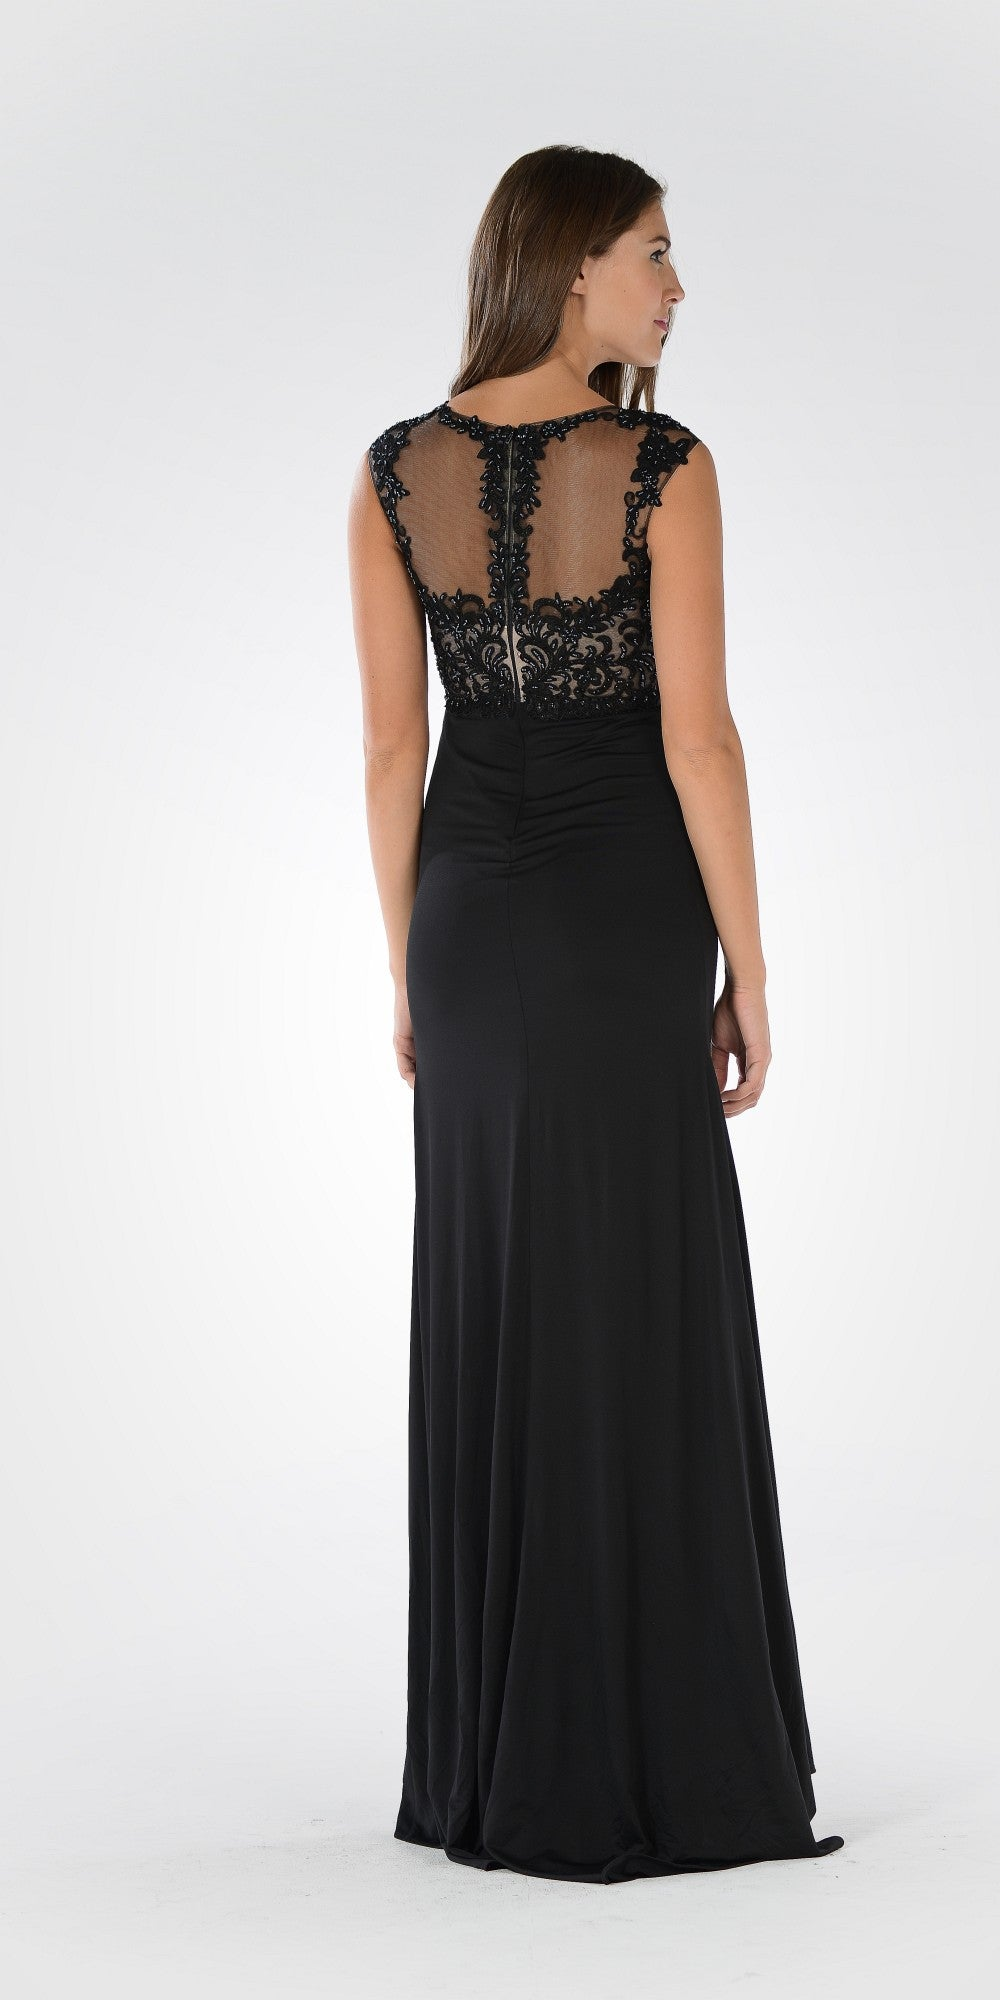 Sleeveless Illusion Applique Bodice High Waist Dinner Party Dress Black